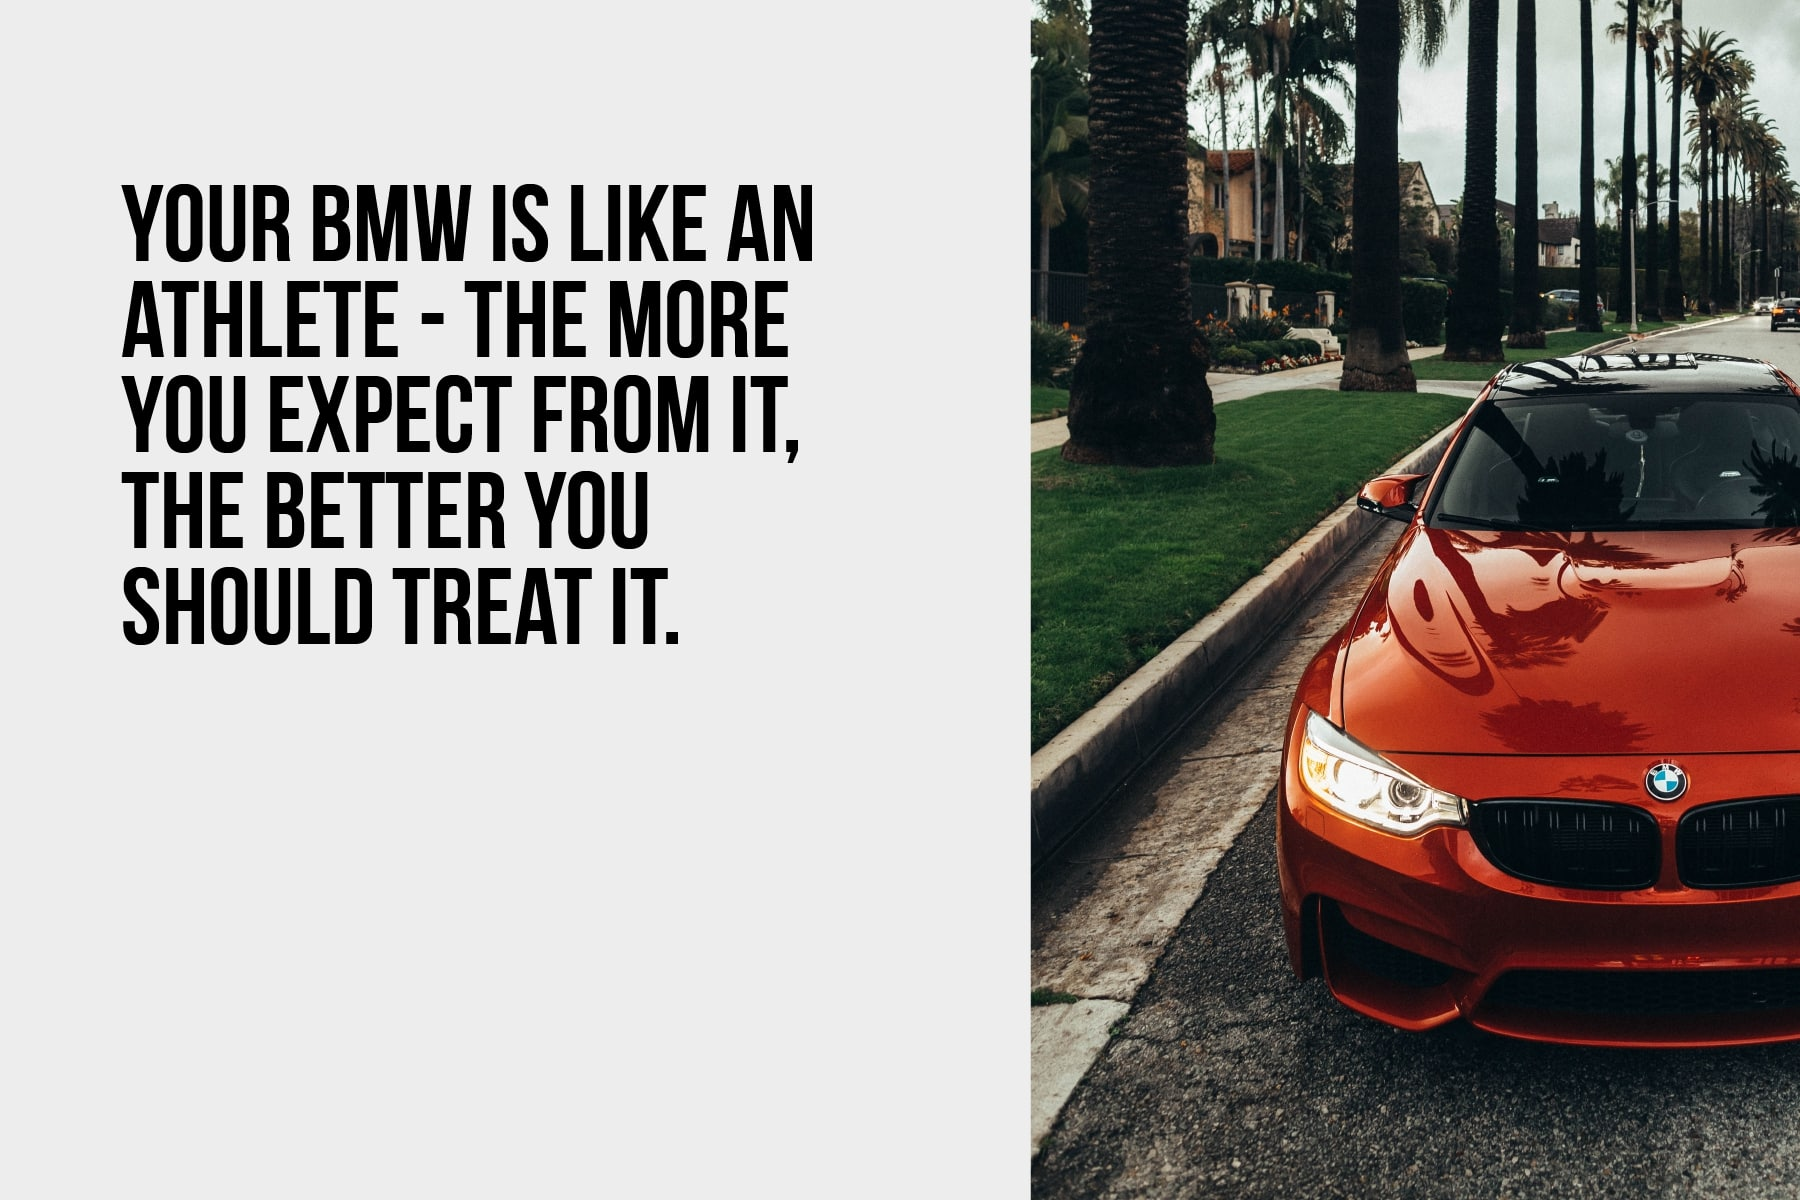 Your BMW is like an athlete